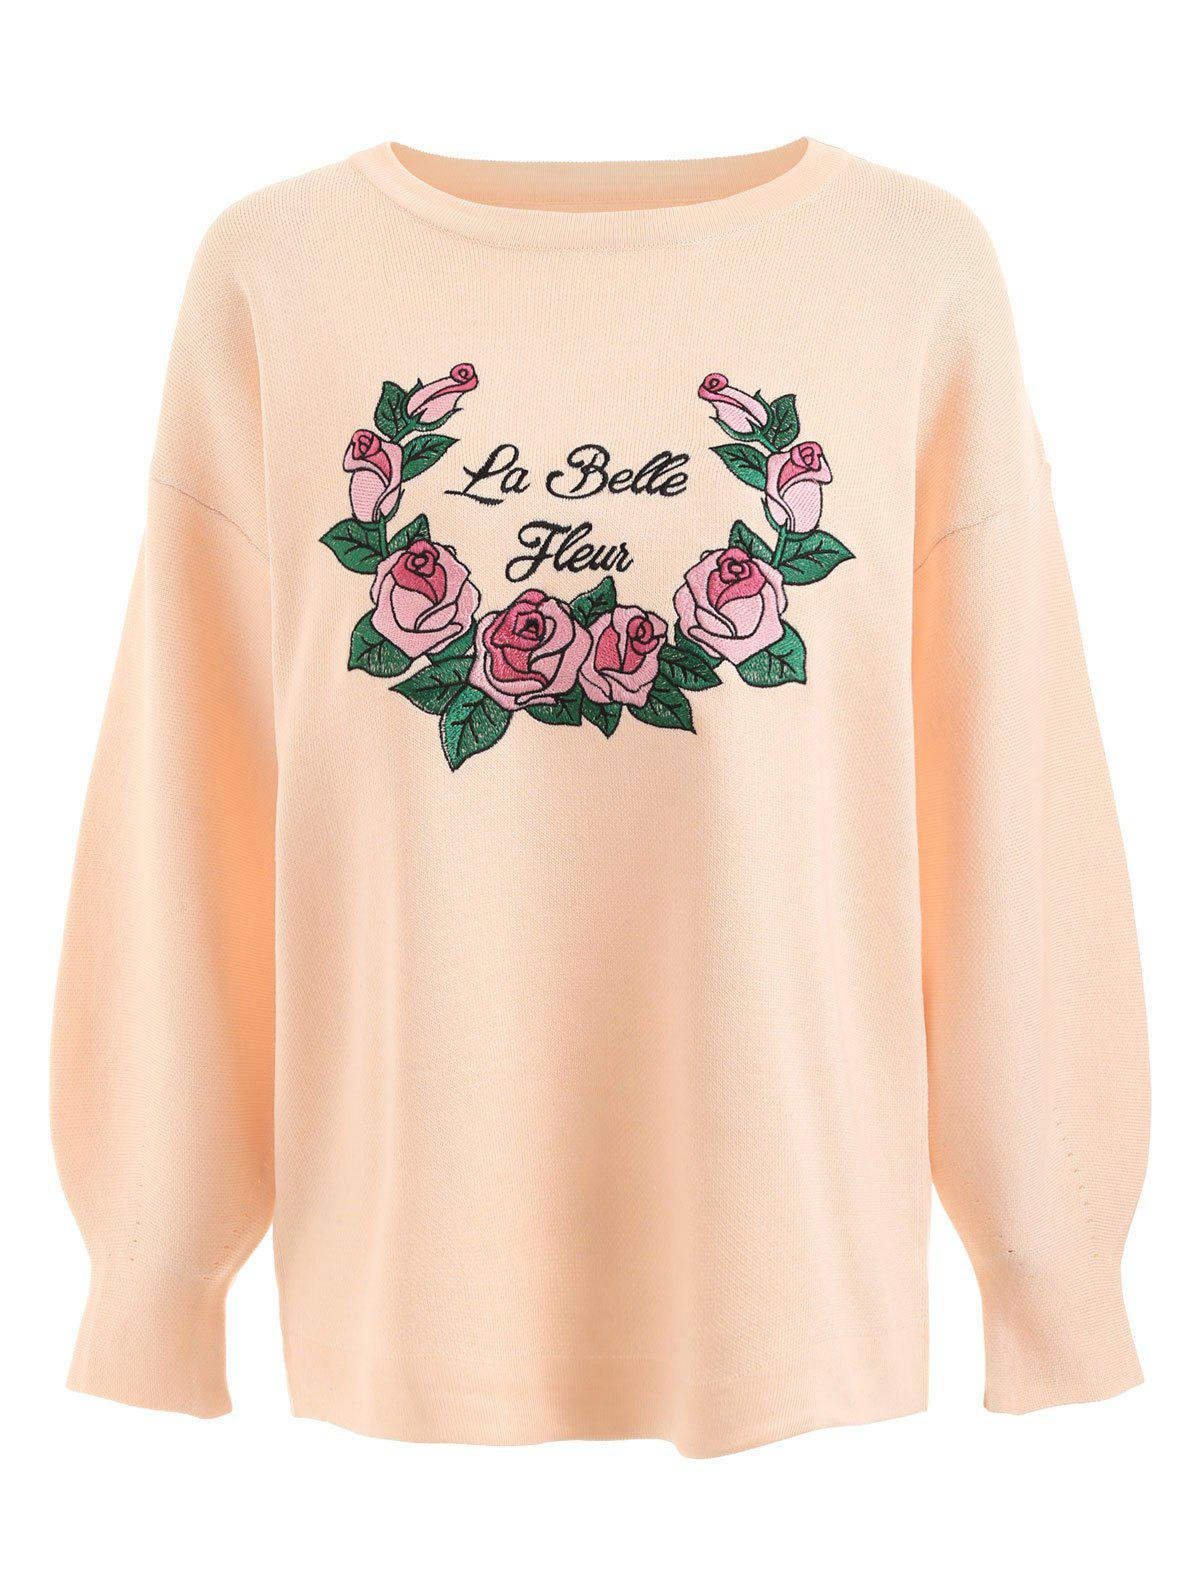 Plus Size Letter Floral Embroidered Sweater - PINKBEIGE 5XL